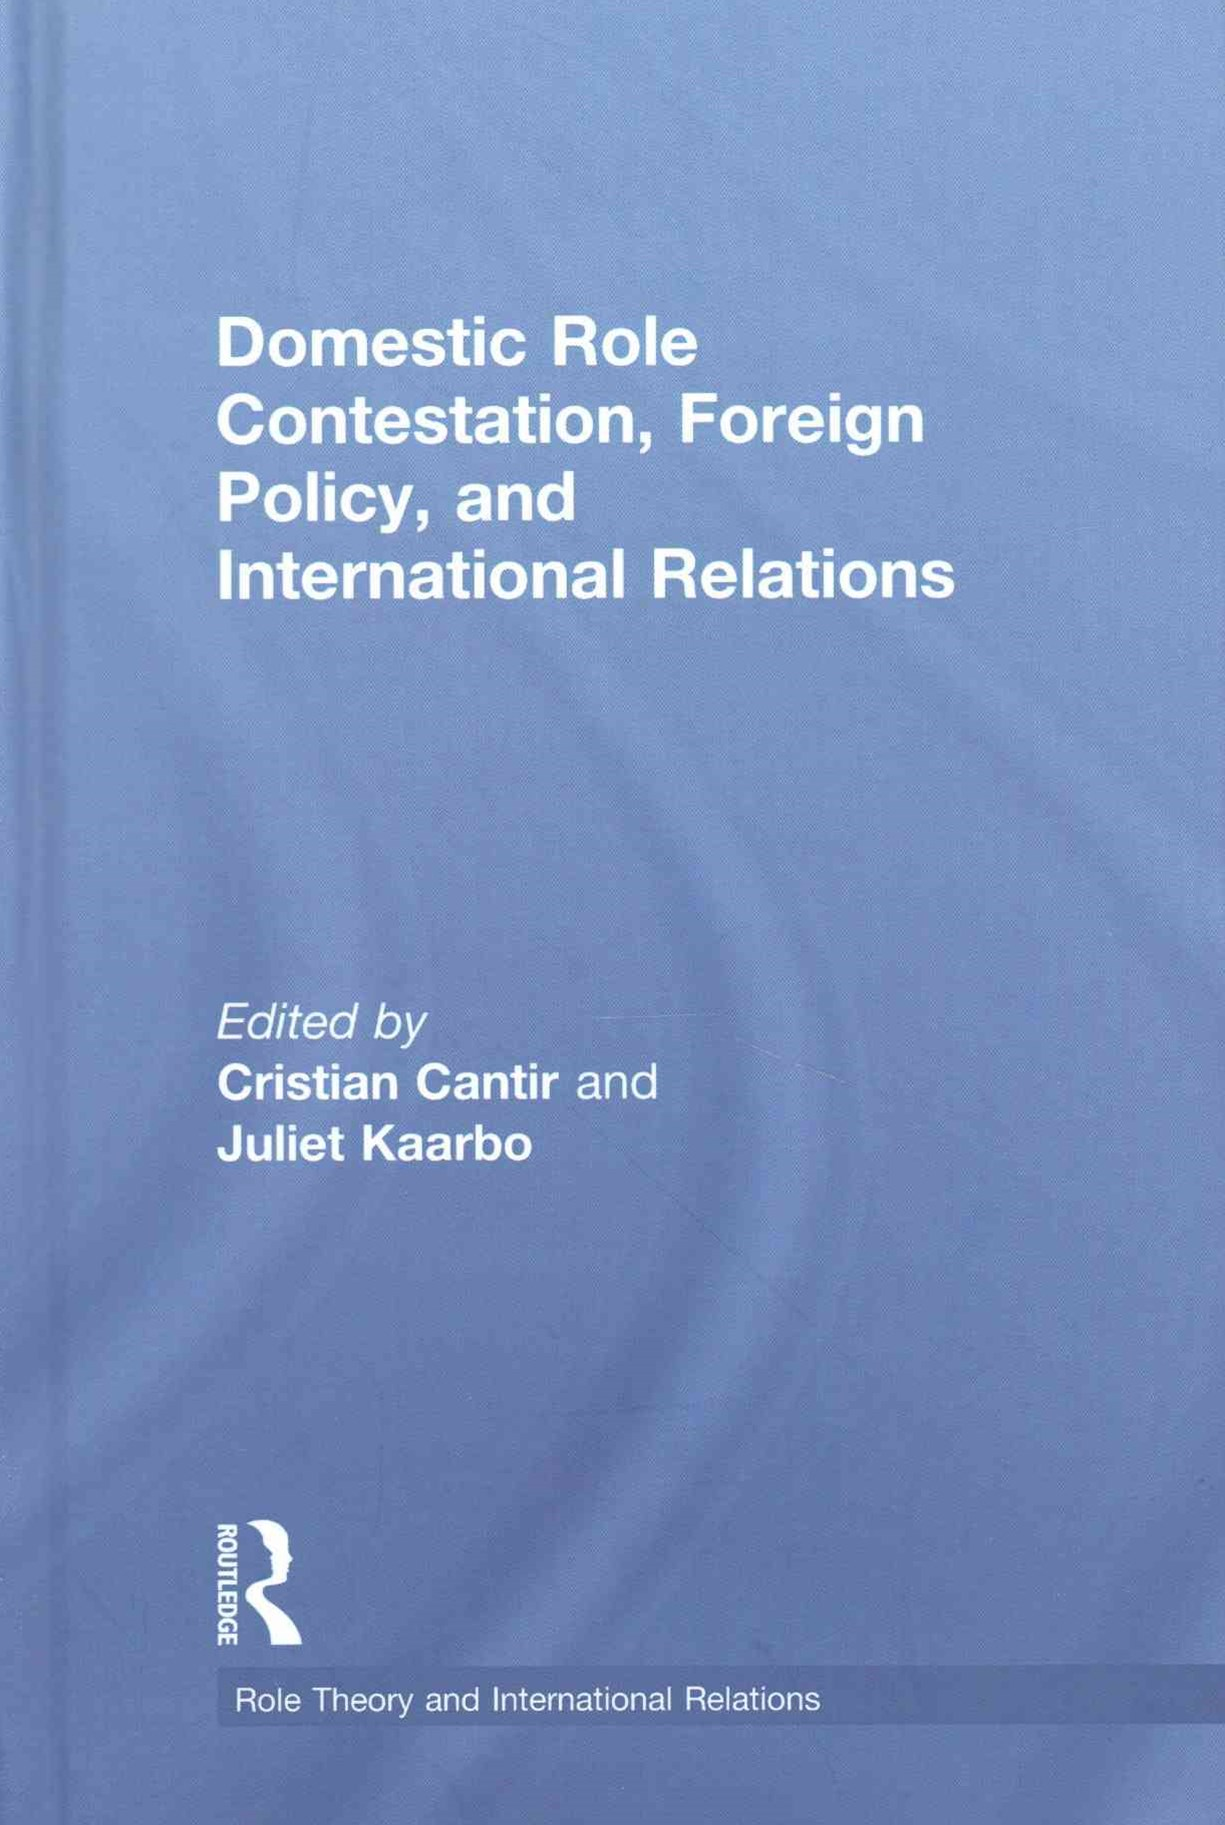 Domestic Role Contestation, Foreign Policy and International Relations